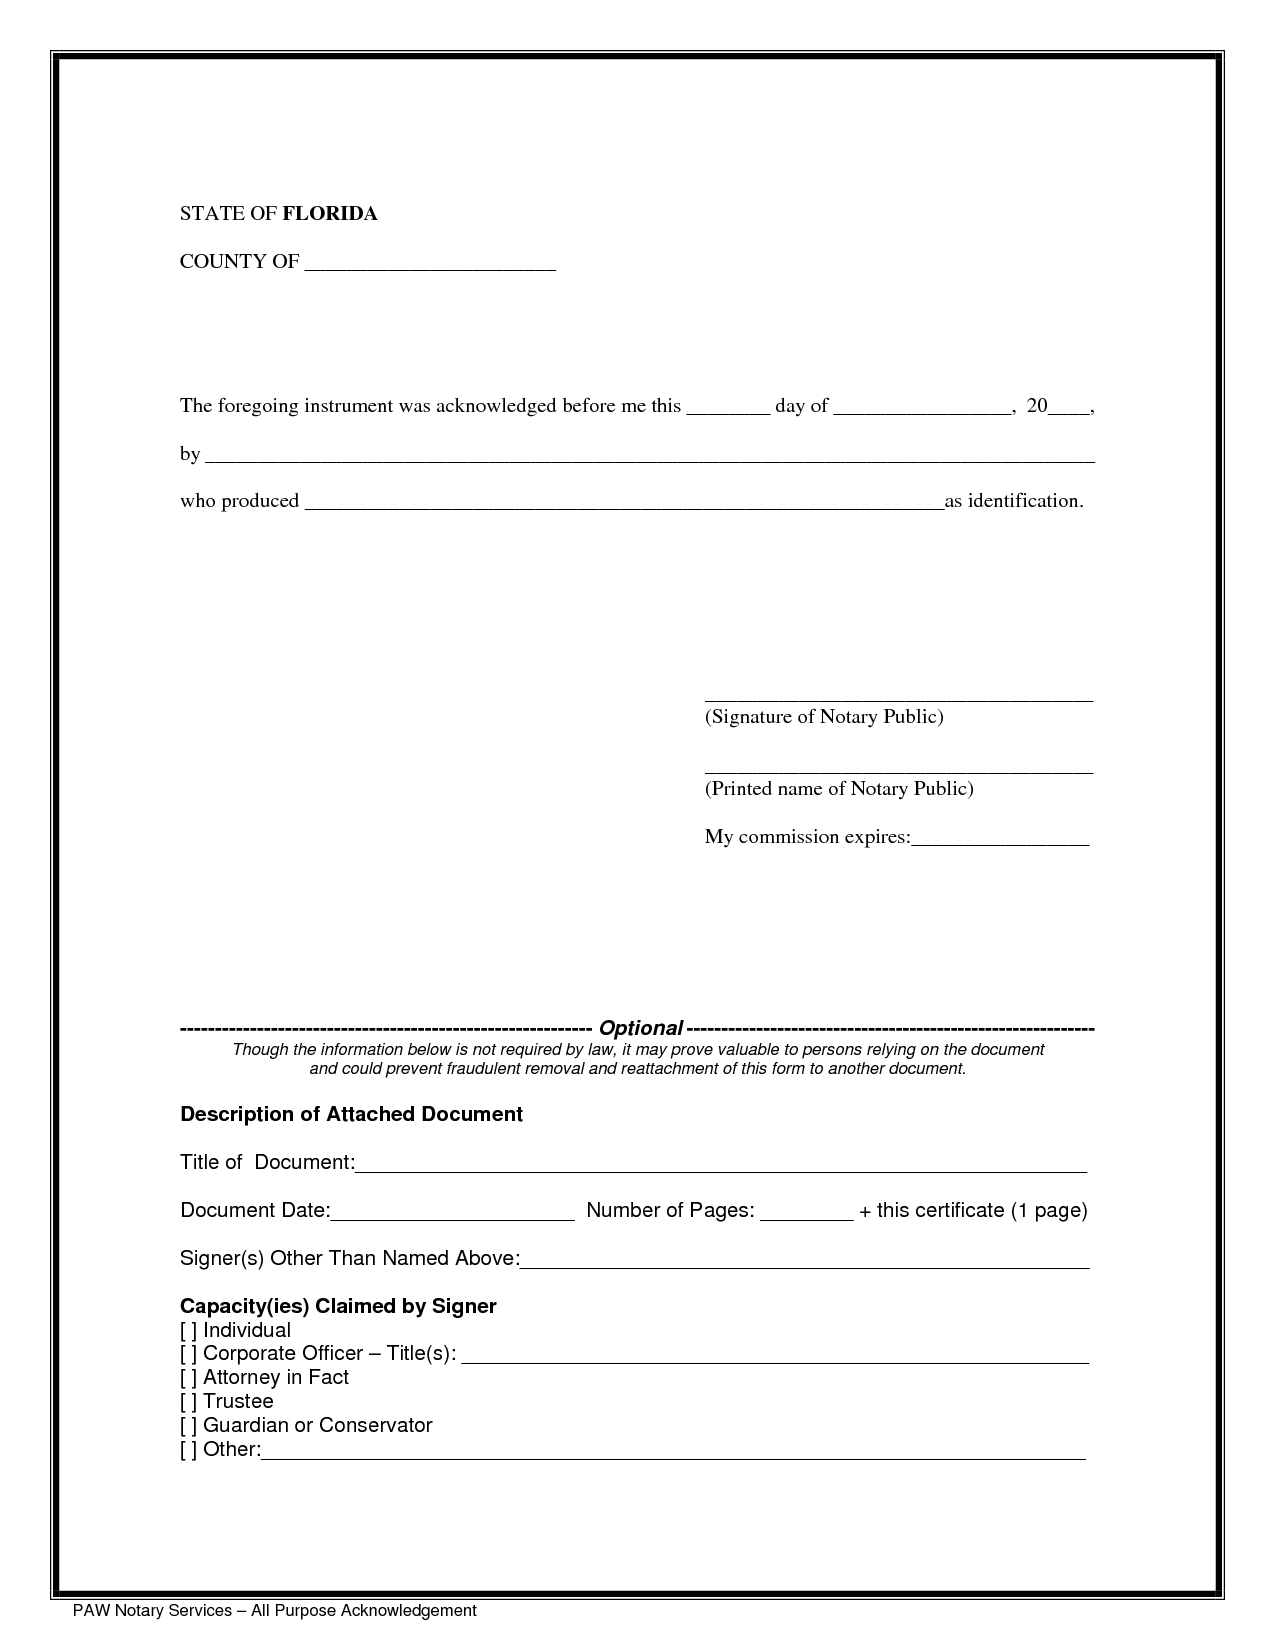 Notary Public Notary Form Template